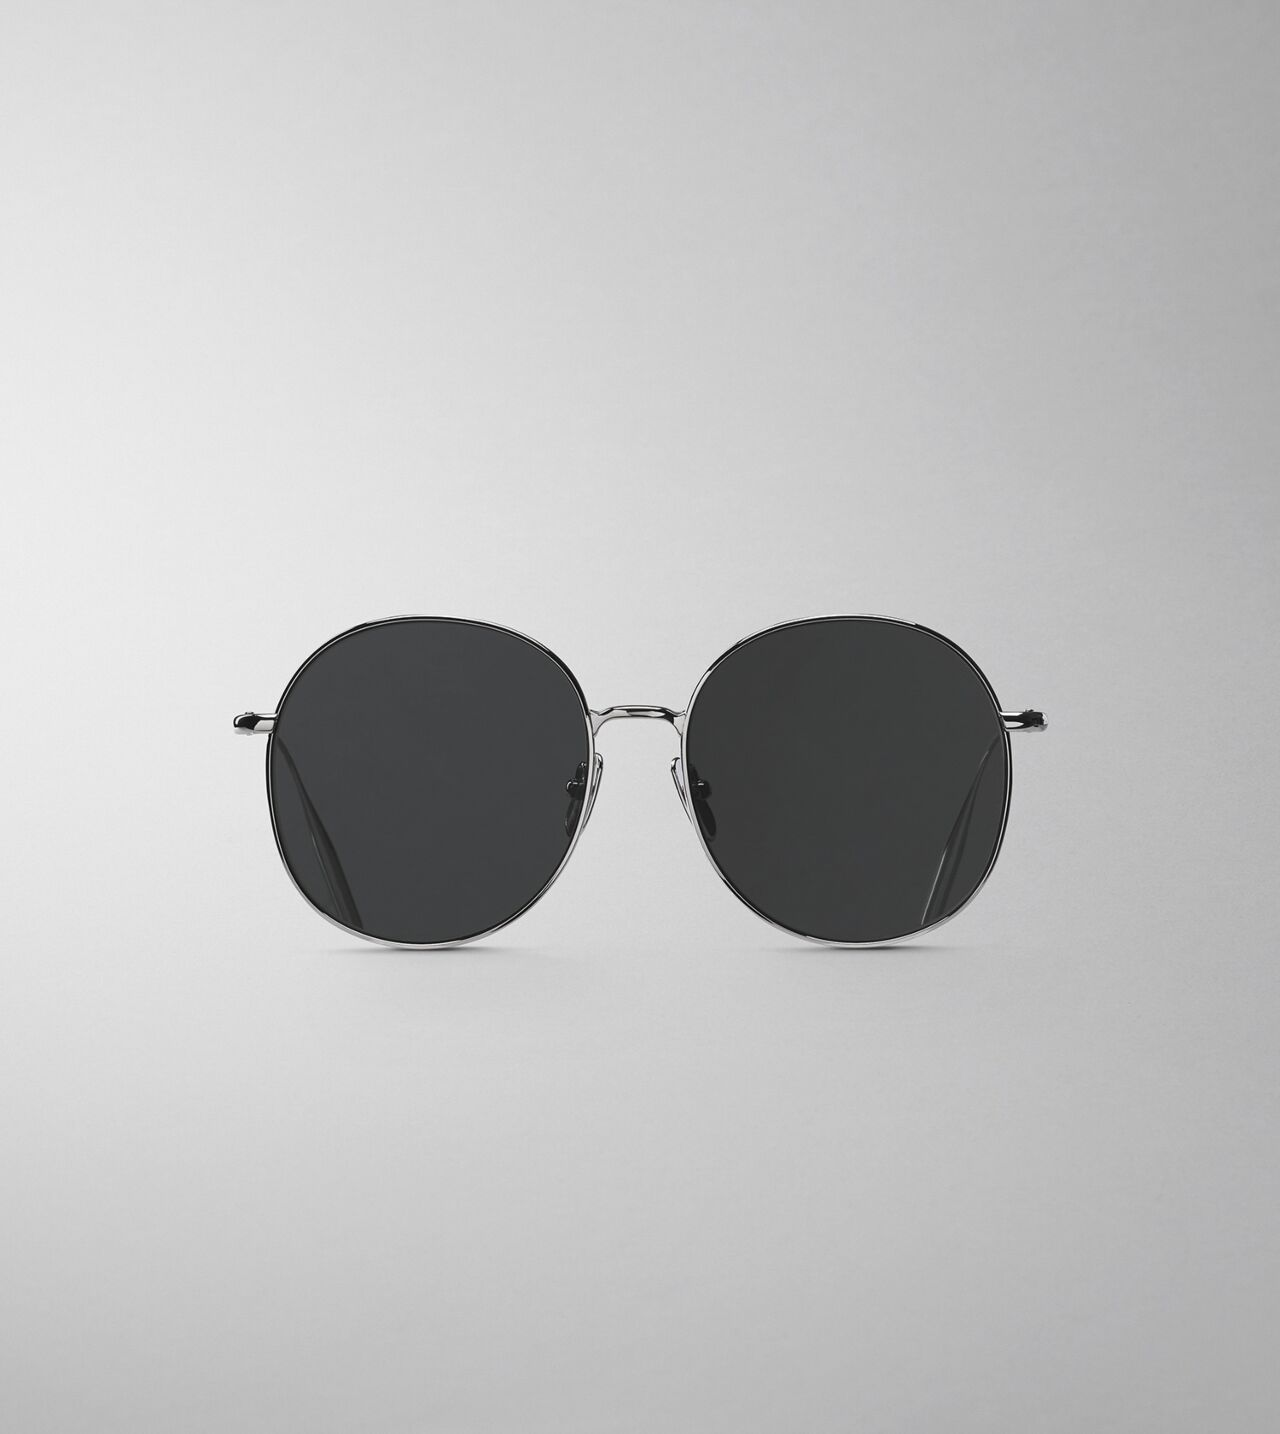 Picture of Byredo The Bohemian in Palladium grey